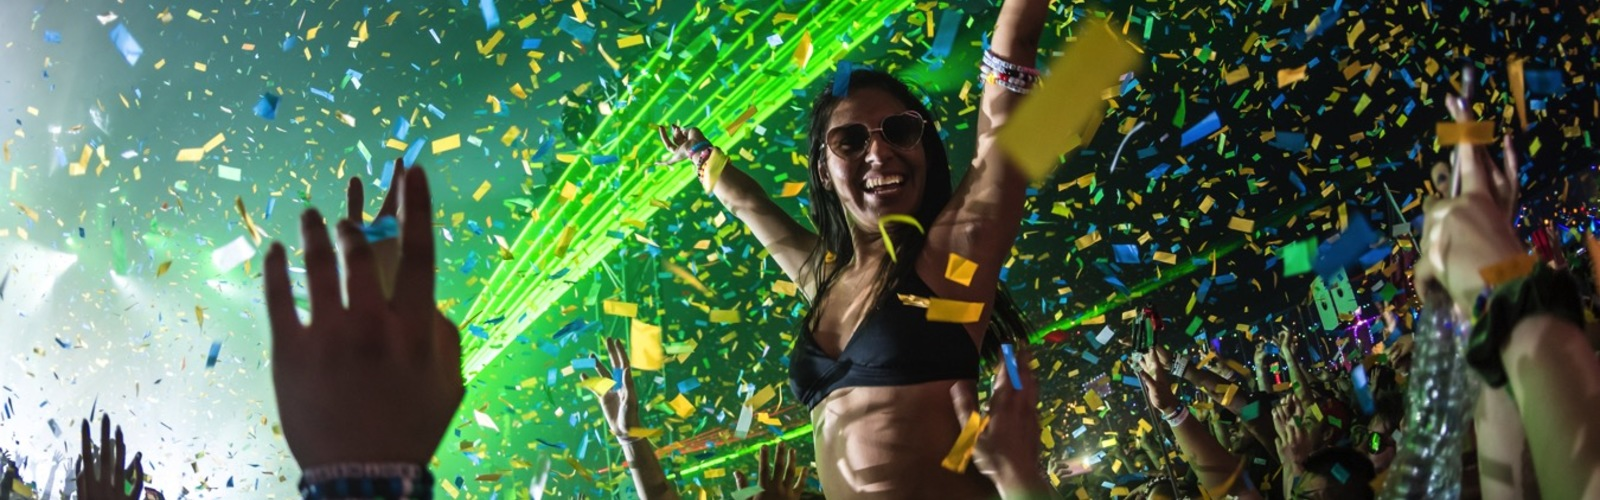 Beyond Wonderland: dance, dream and have the time of your life!